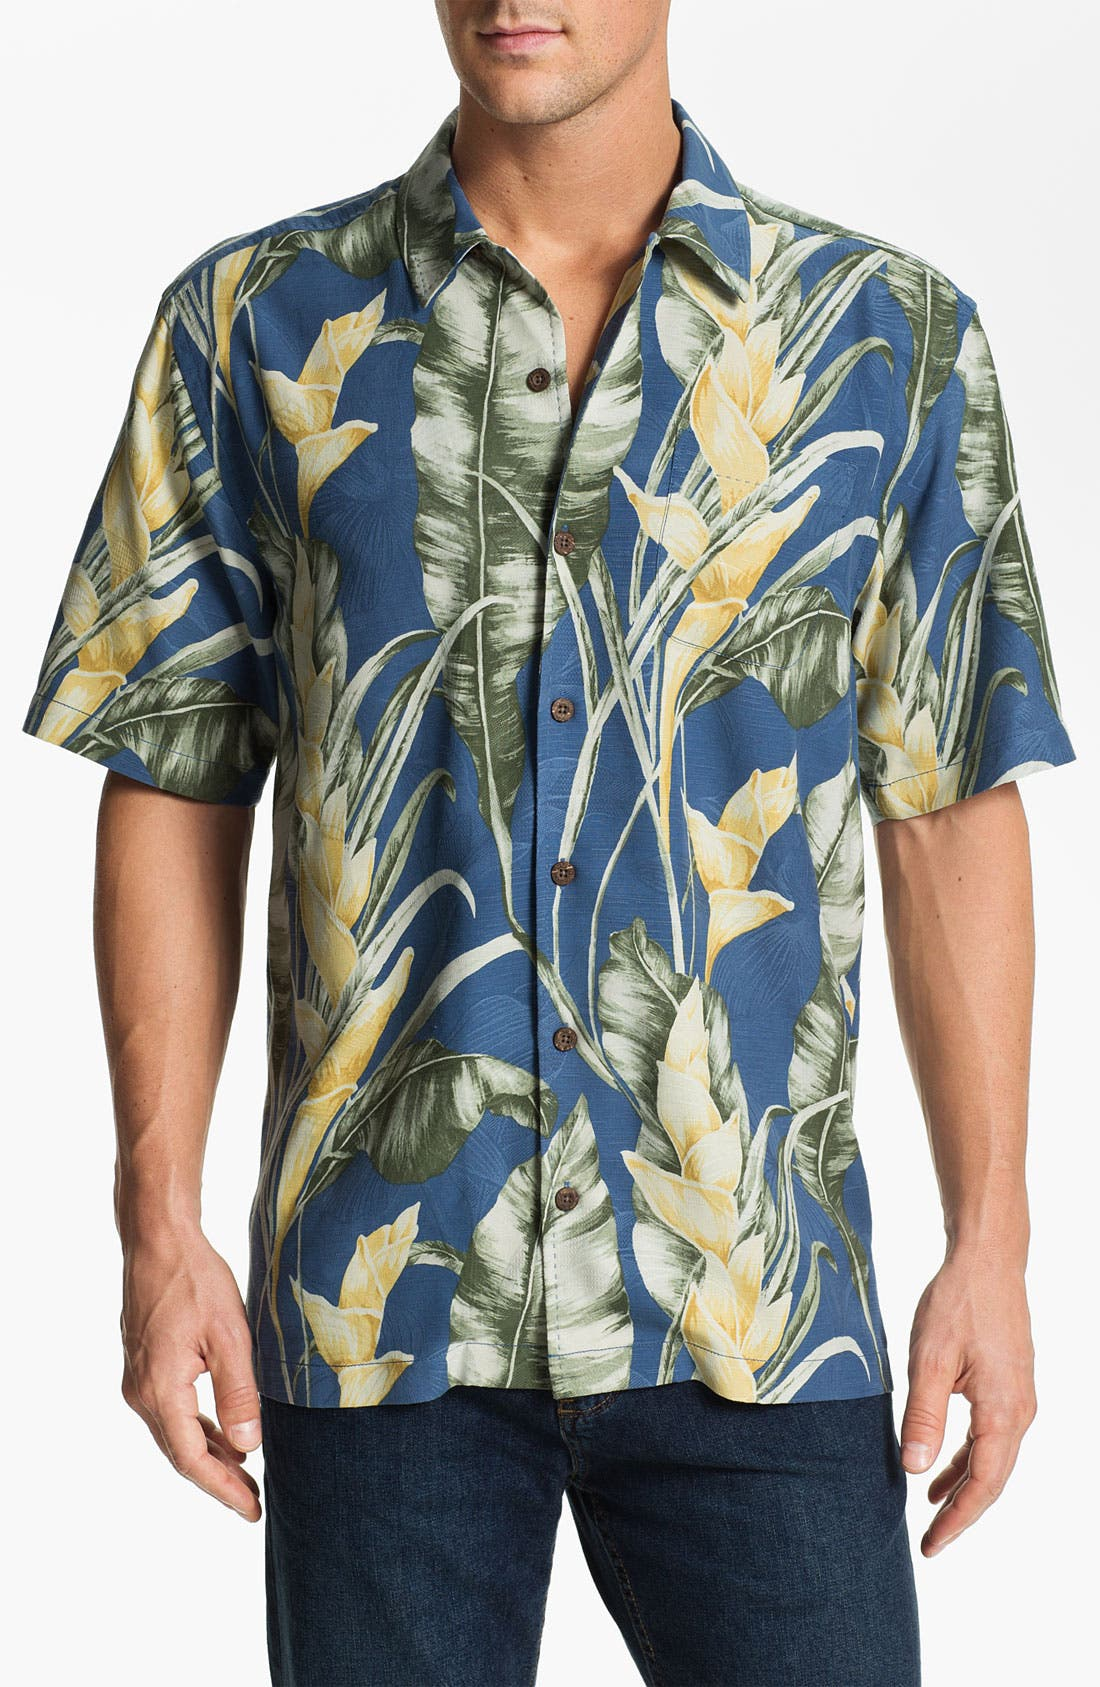 Main Image - Tommy Bahama 'Wind Waves' Silk Campshirt (Big & Tall) (Online Only)